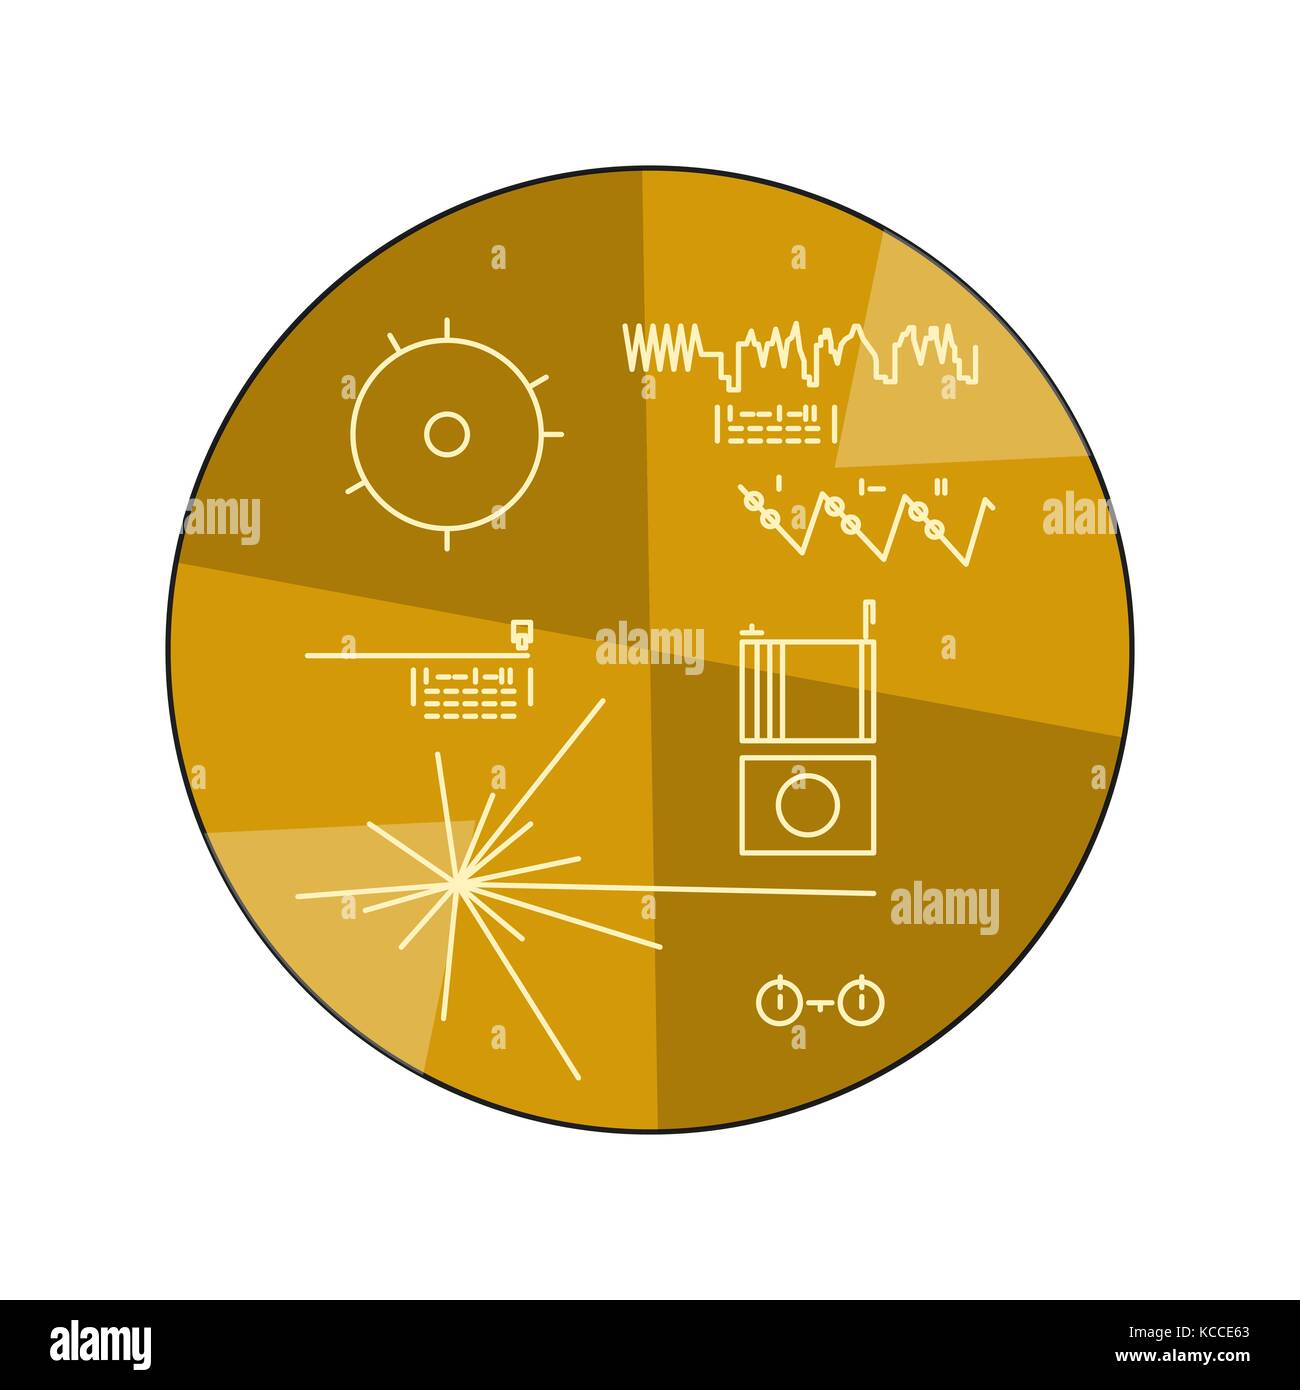 Golden Record Stock Photos Amp Golden Record Stock Images